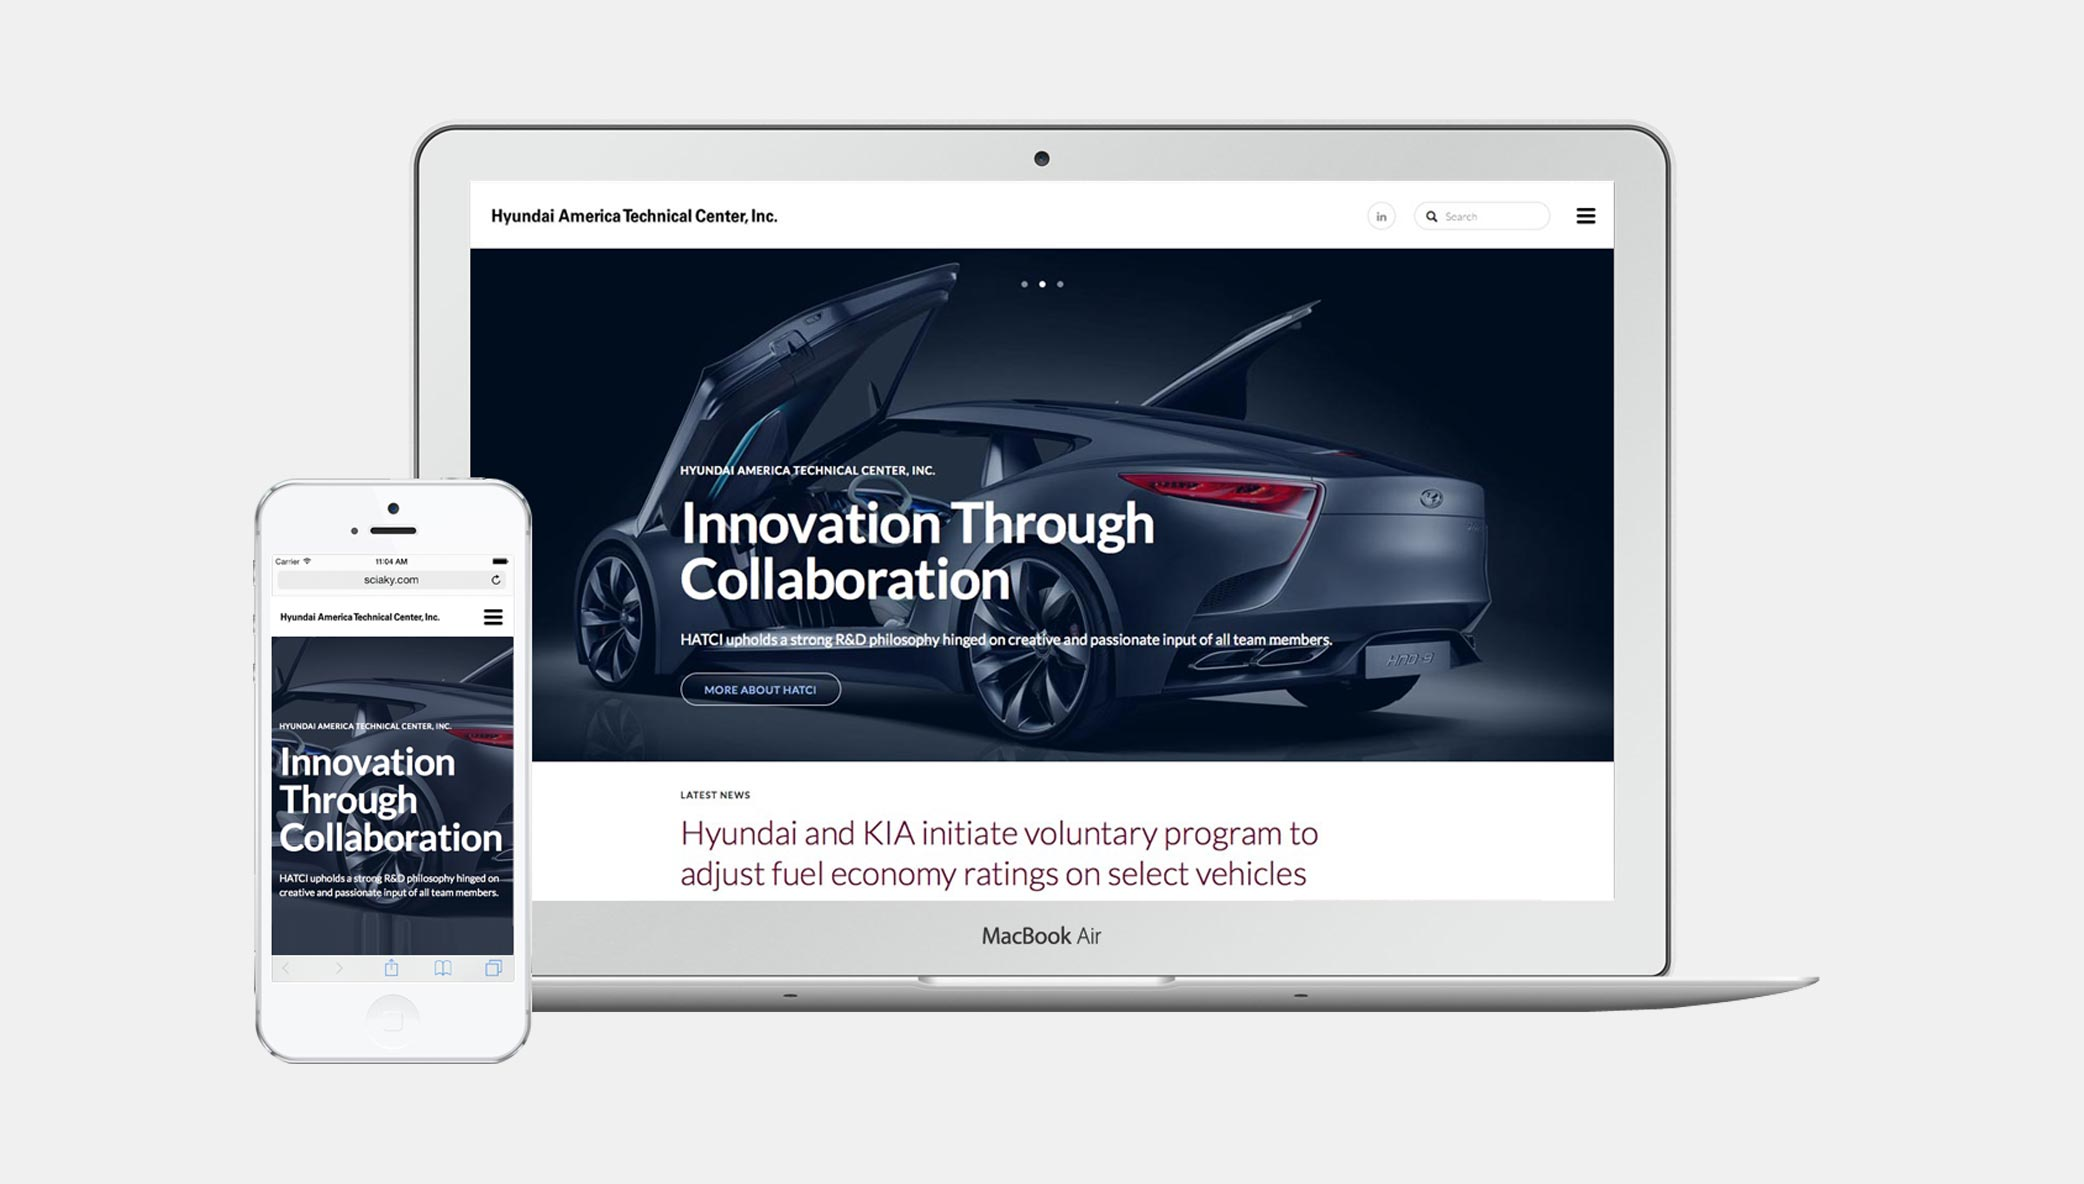 Stone Launches New Website Design for Hyundai